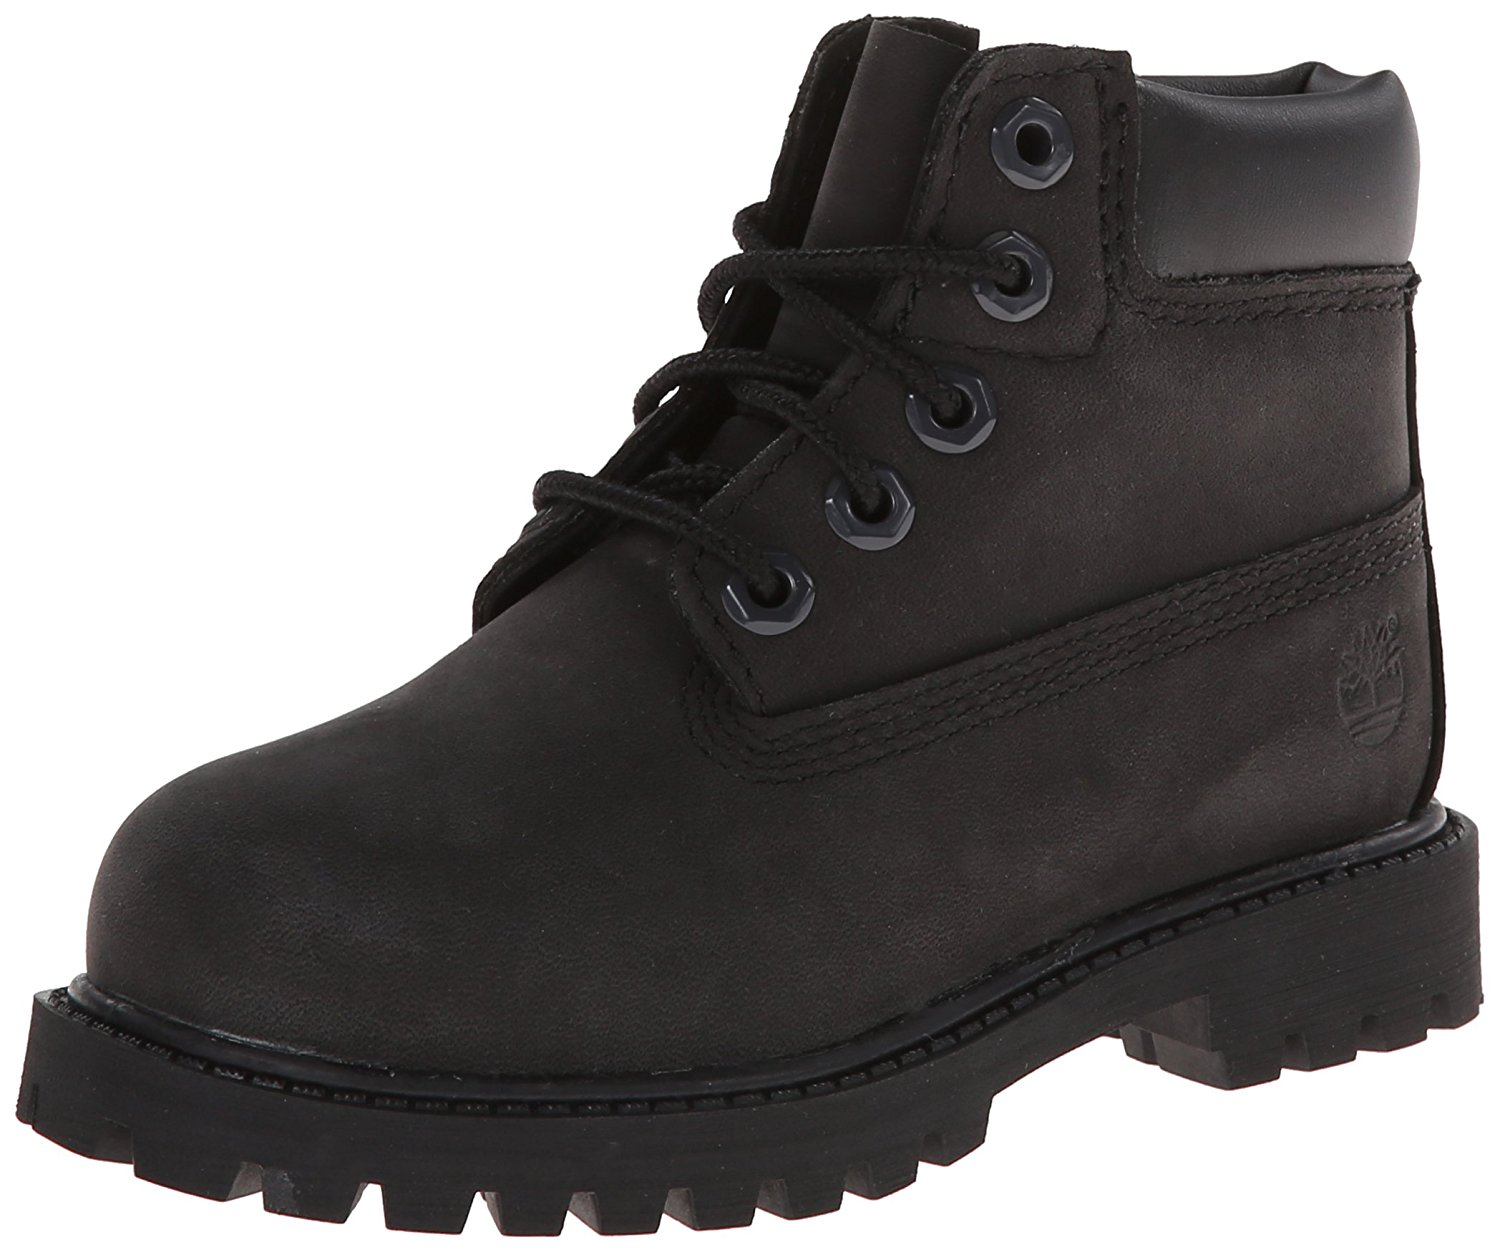 Timberland 6-inch Premium Waterproof-K Boot - Black Nubuck - 6 M Big Kid